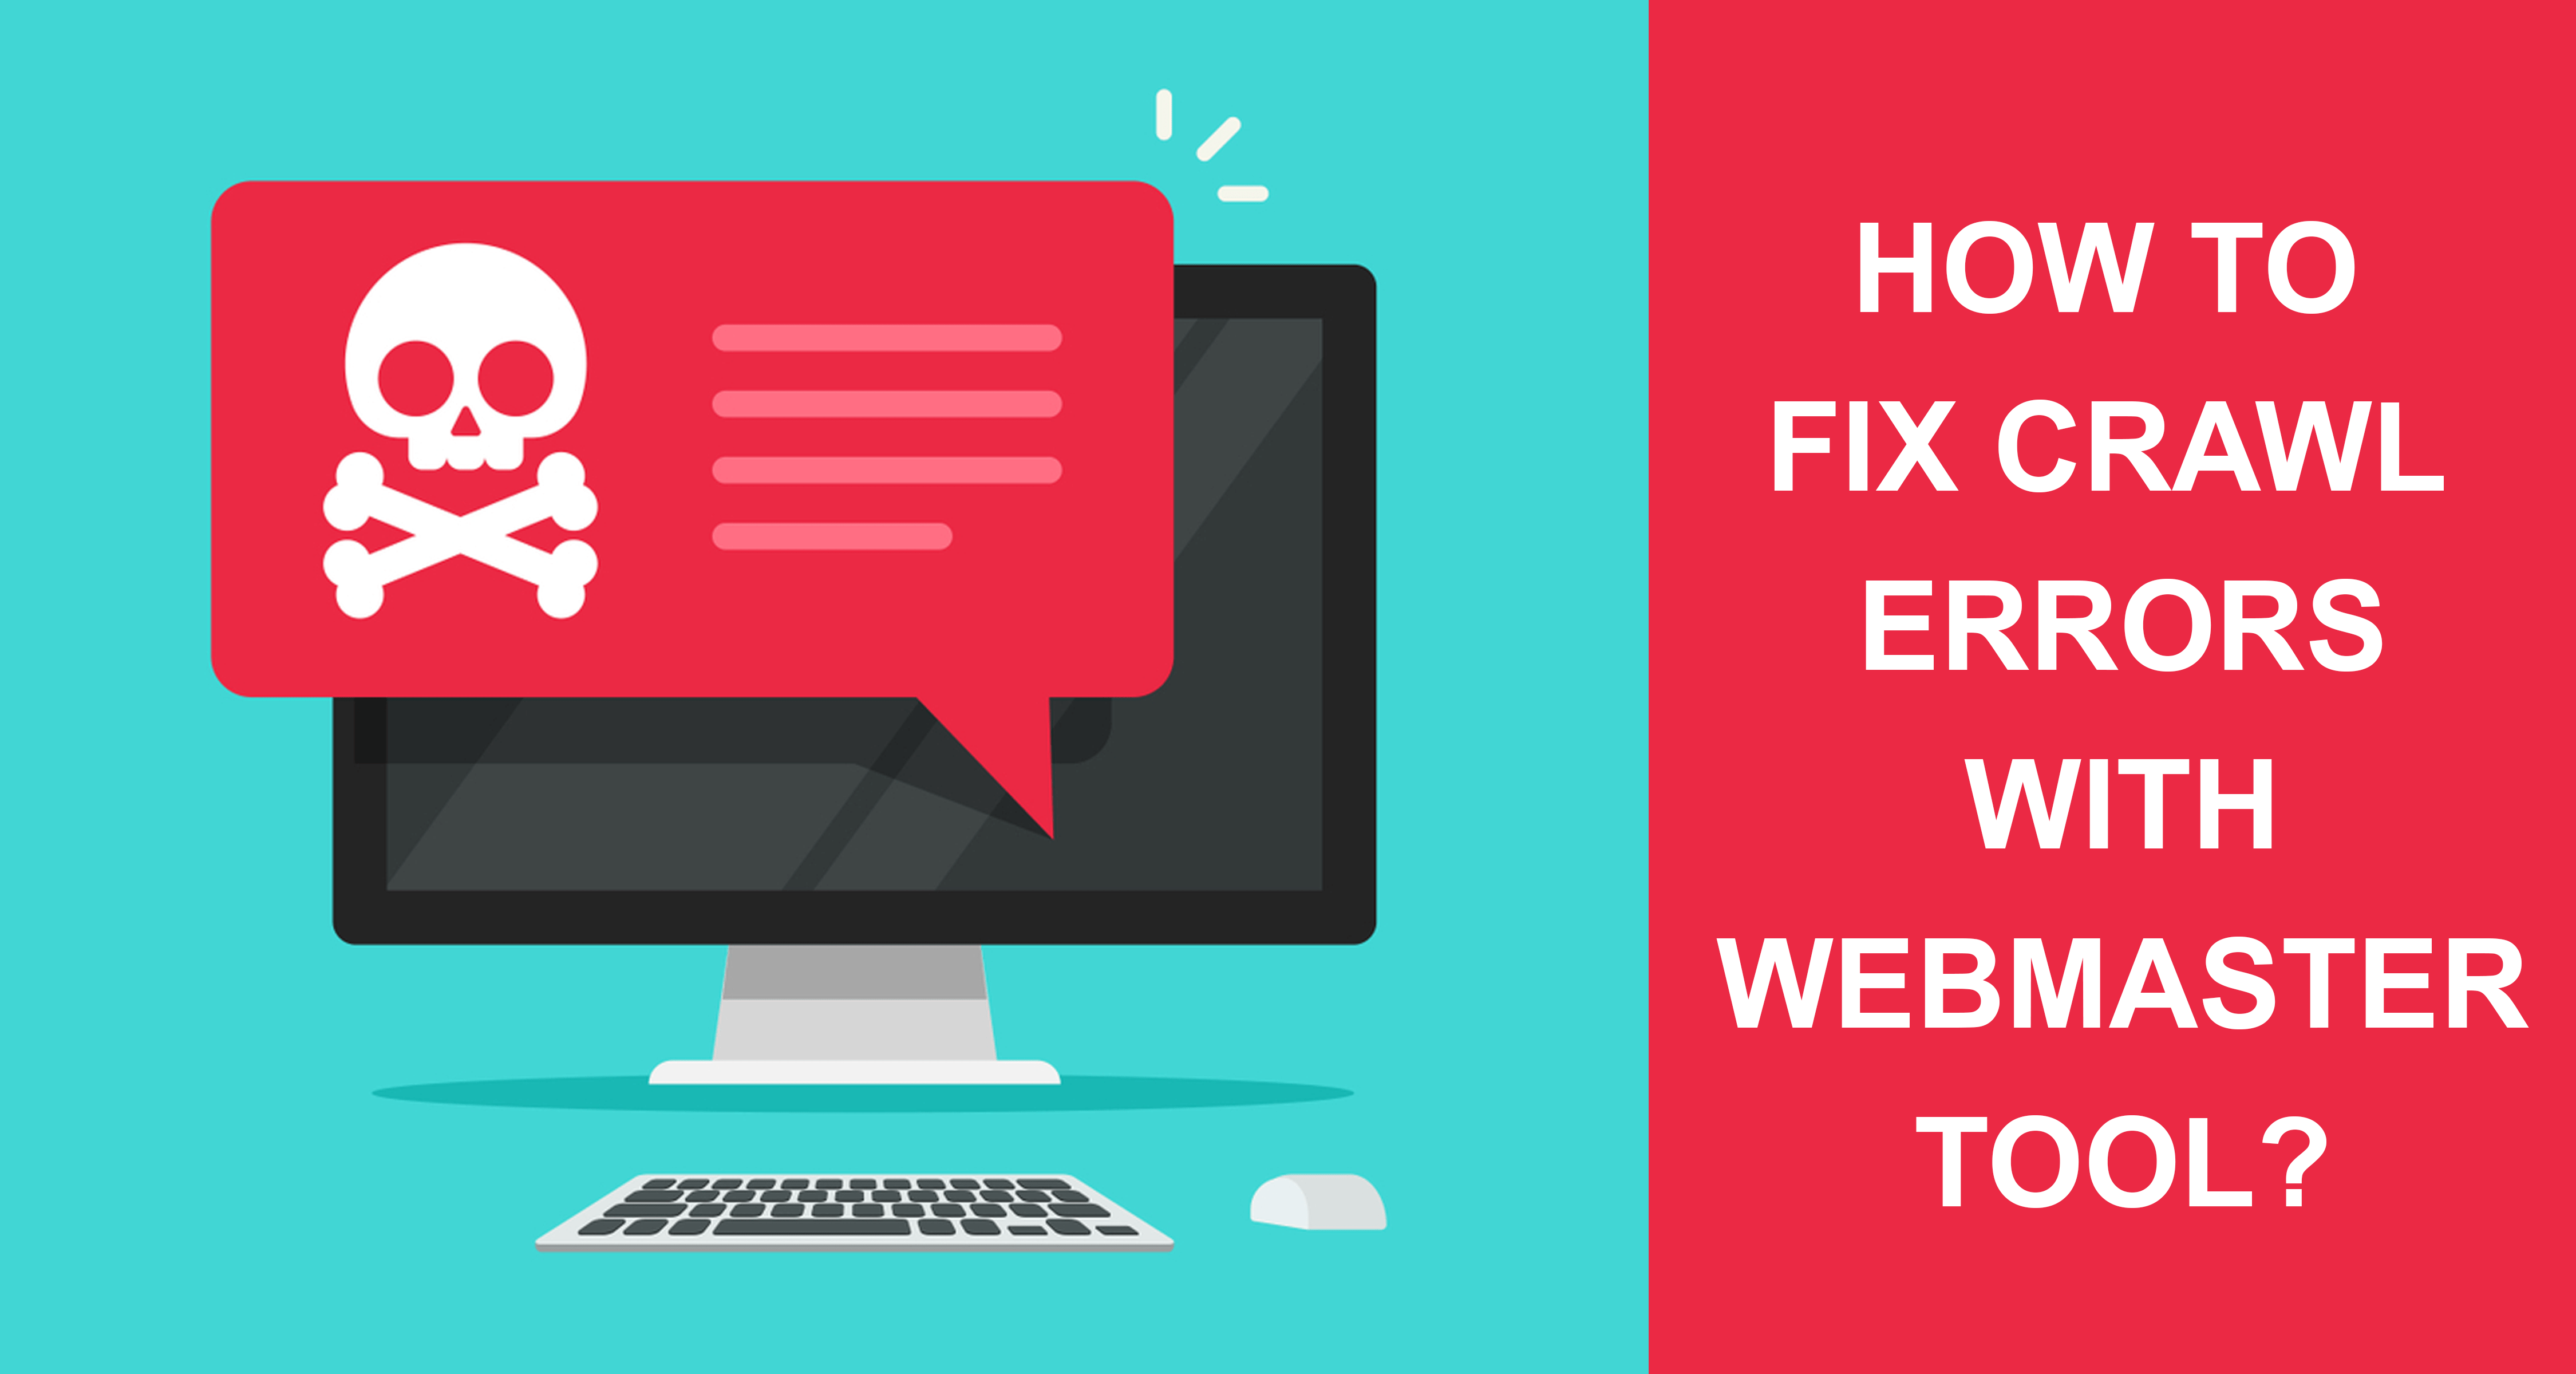 How To Fix Crawl Errors With Webmaster Tool